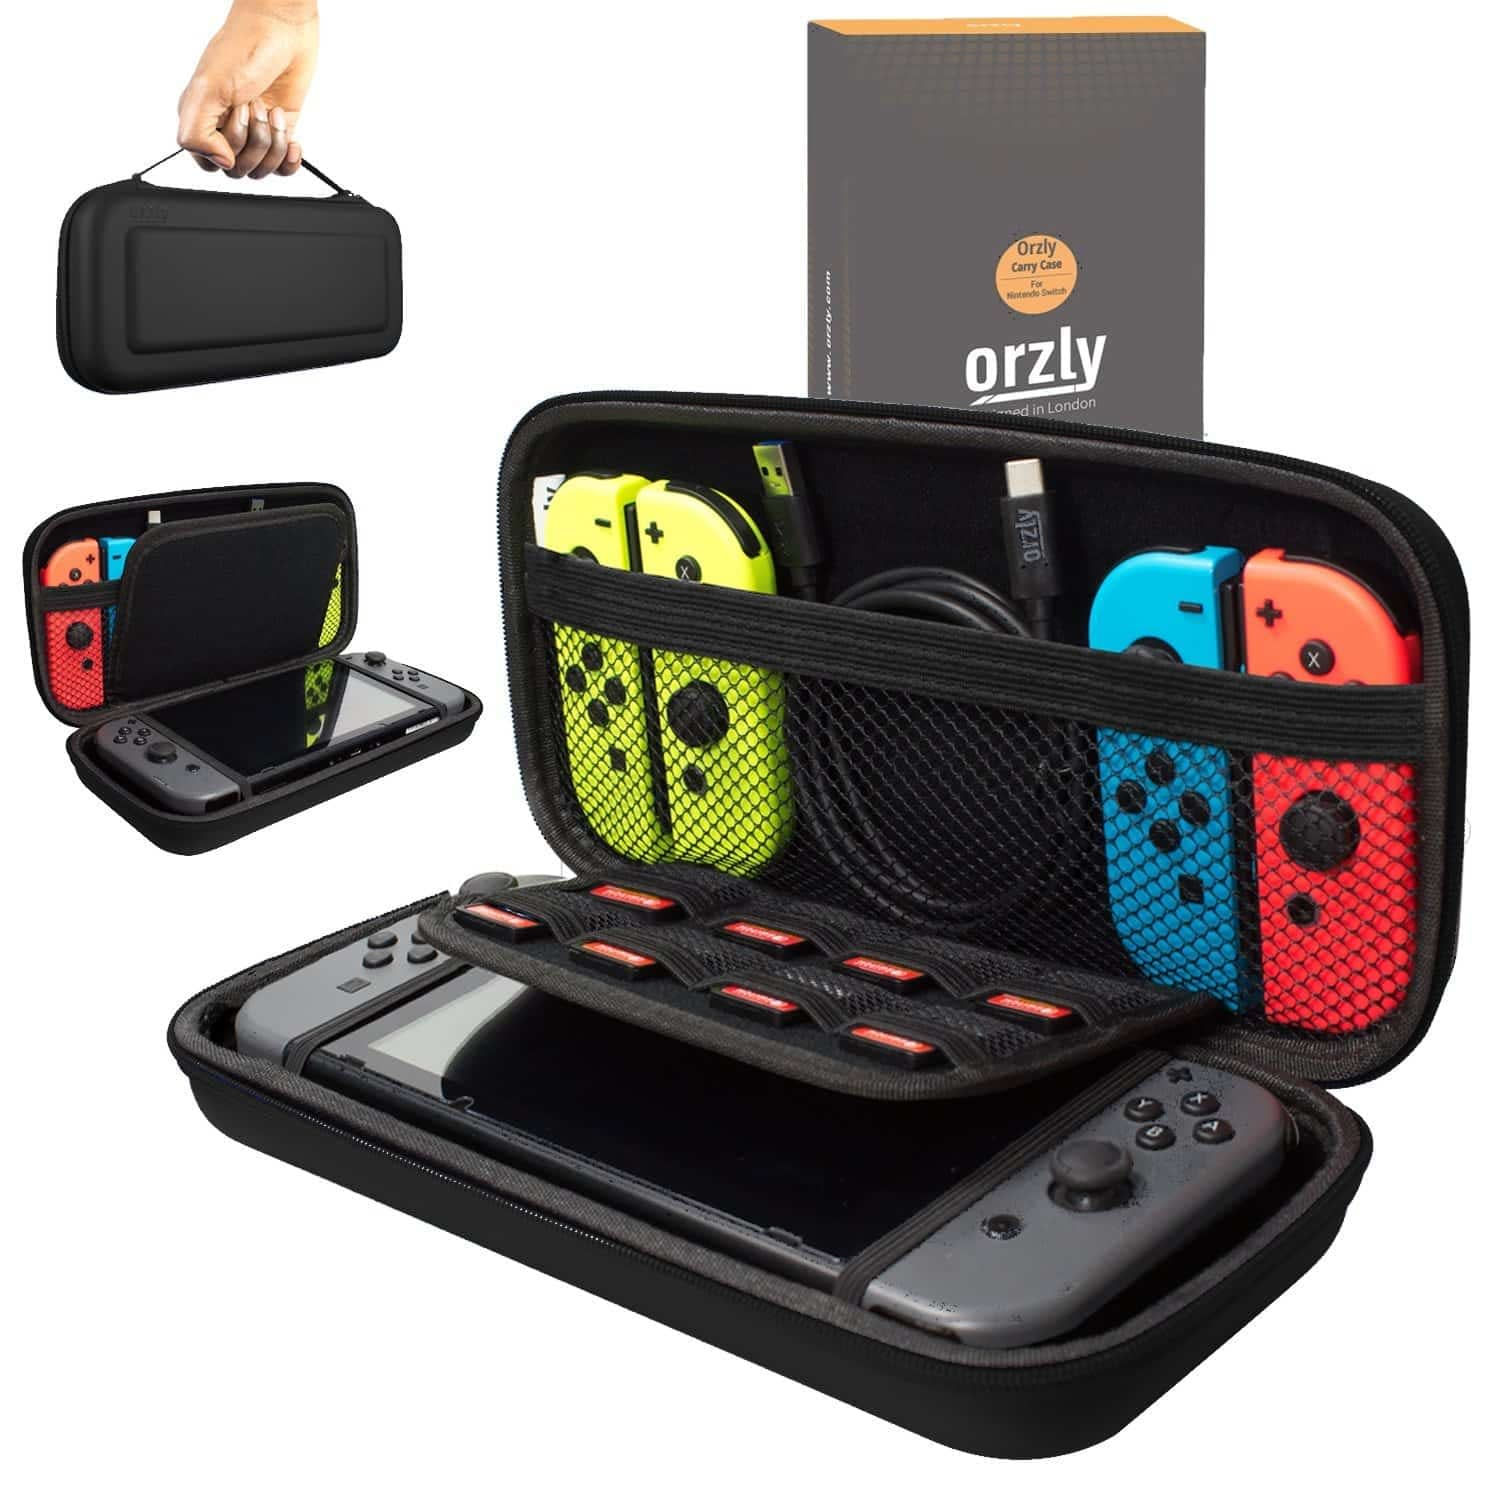 Orzly - best switch carrying case